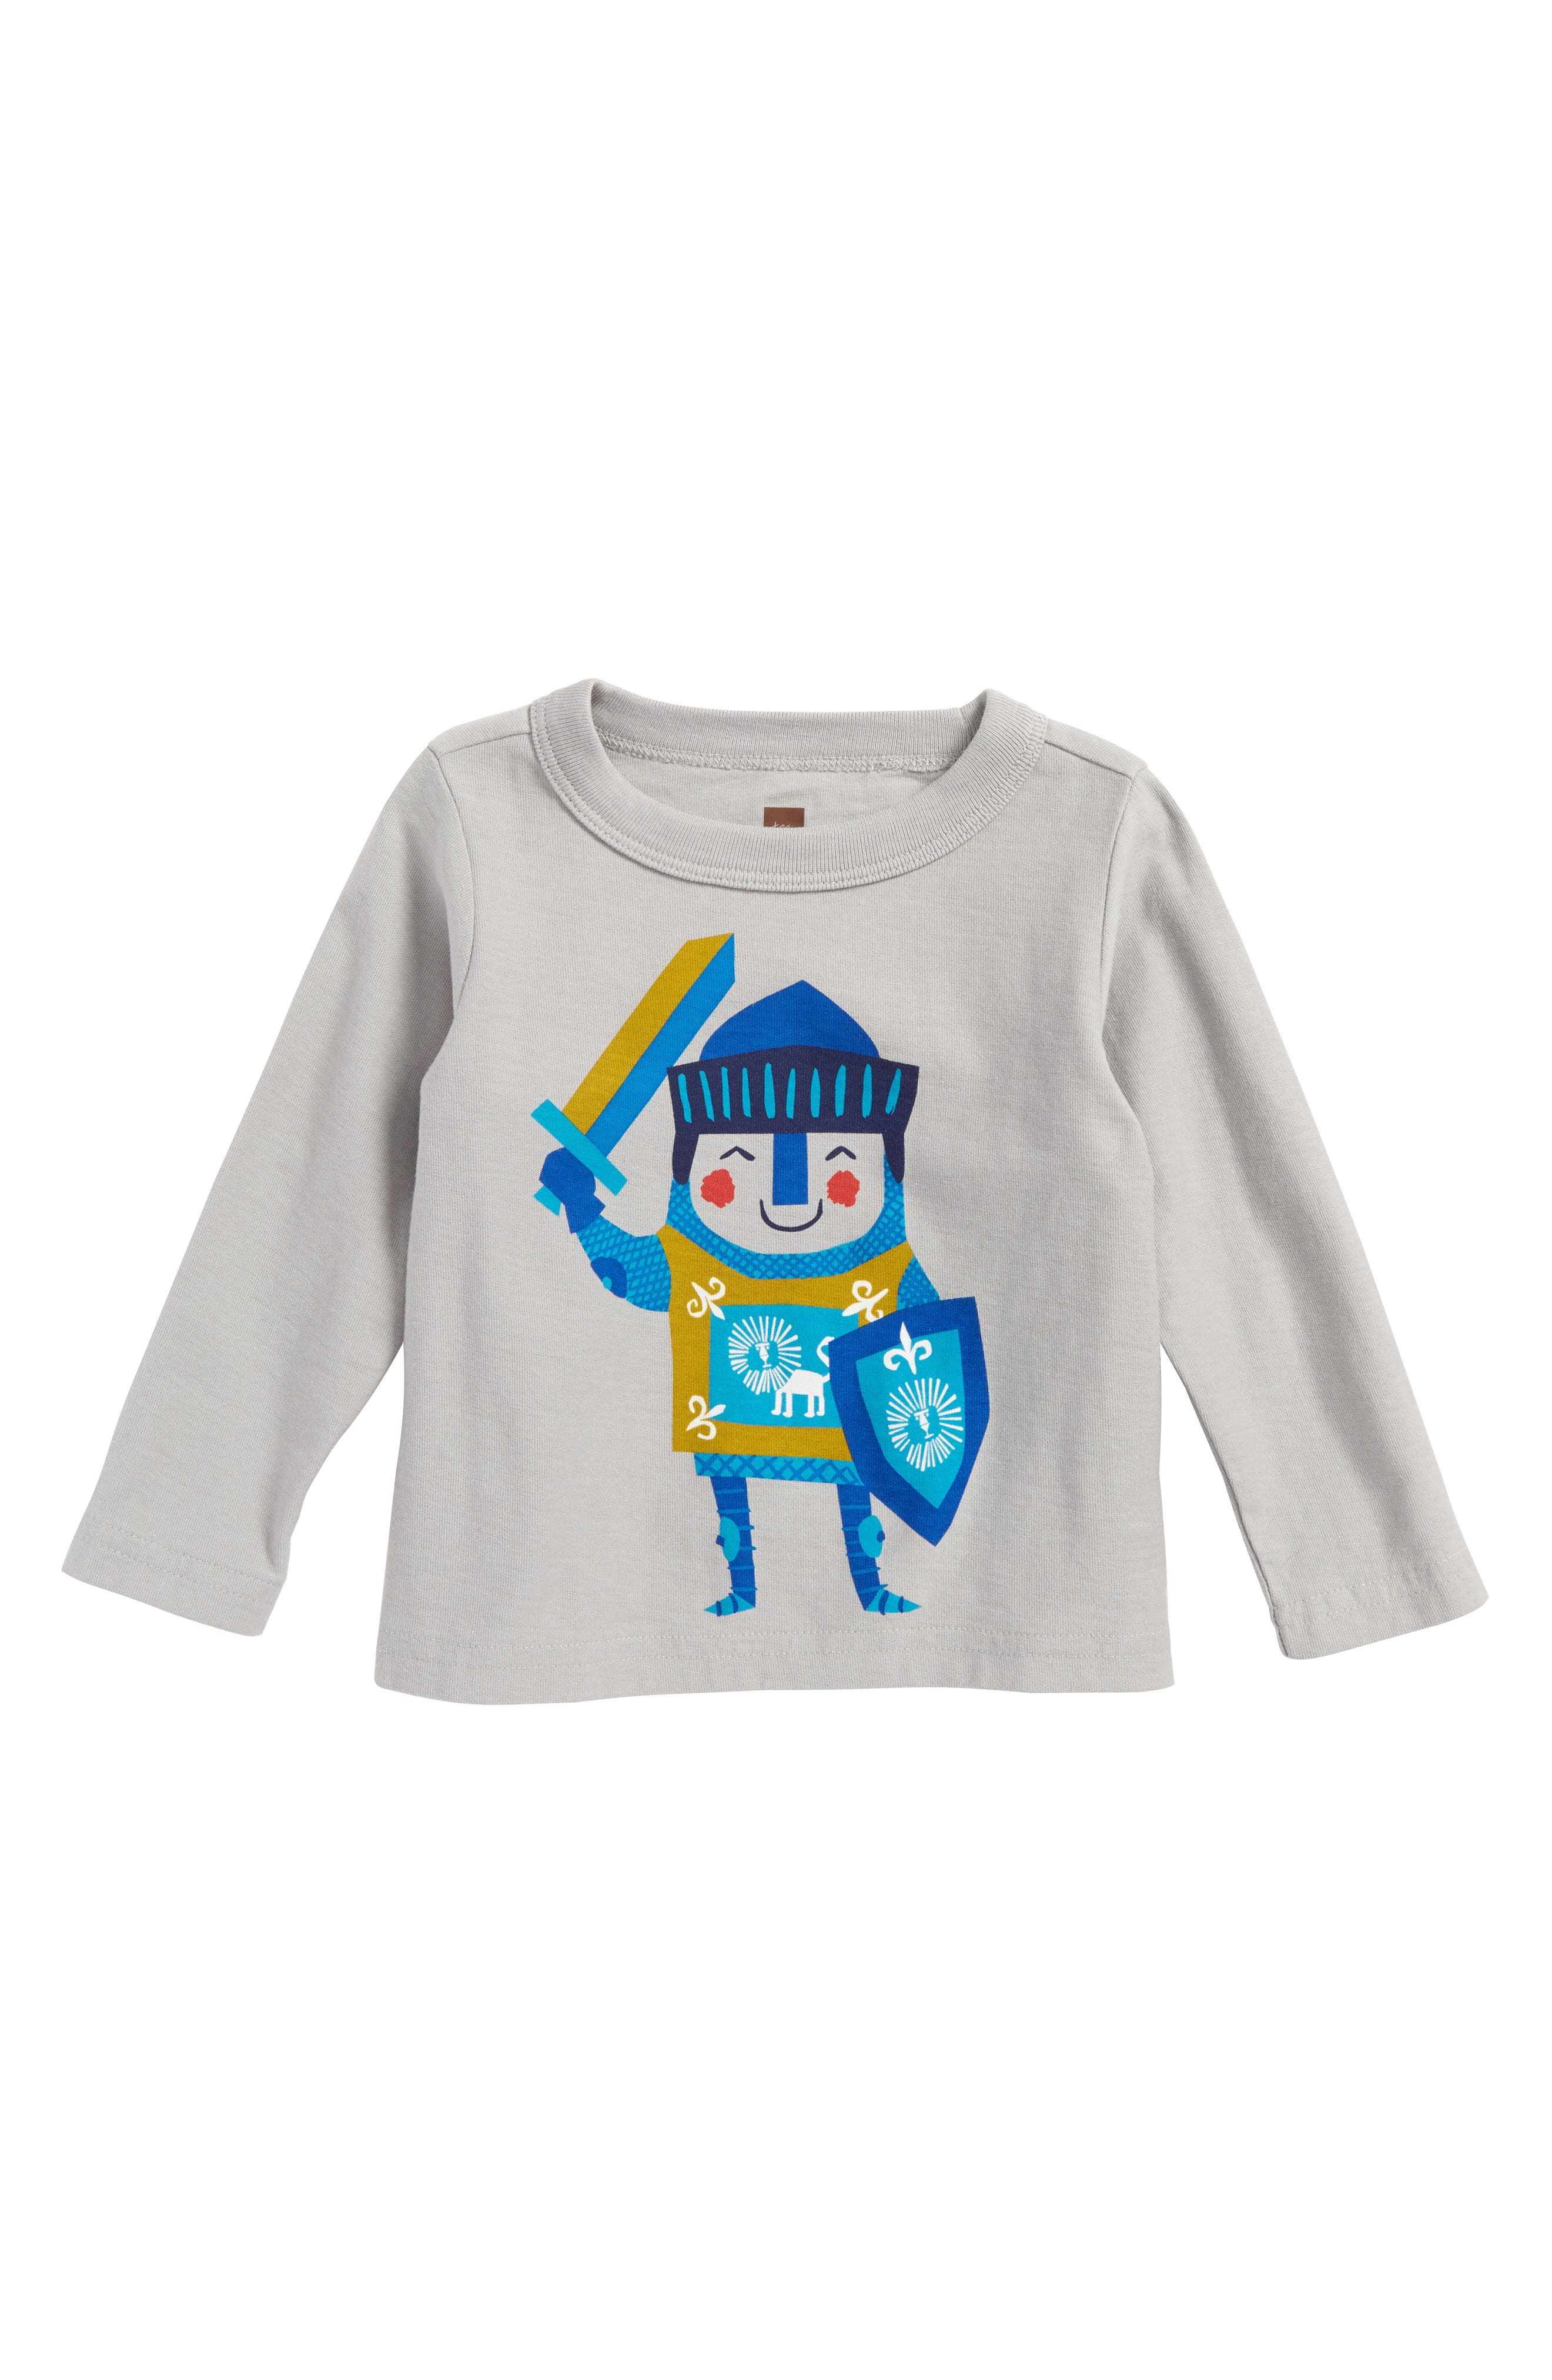 Little Knight T-Shirt,                         Main,                         color, 020